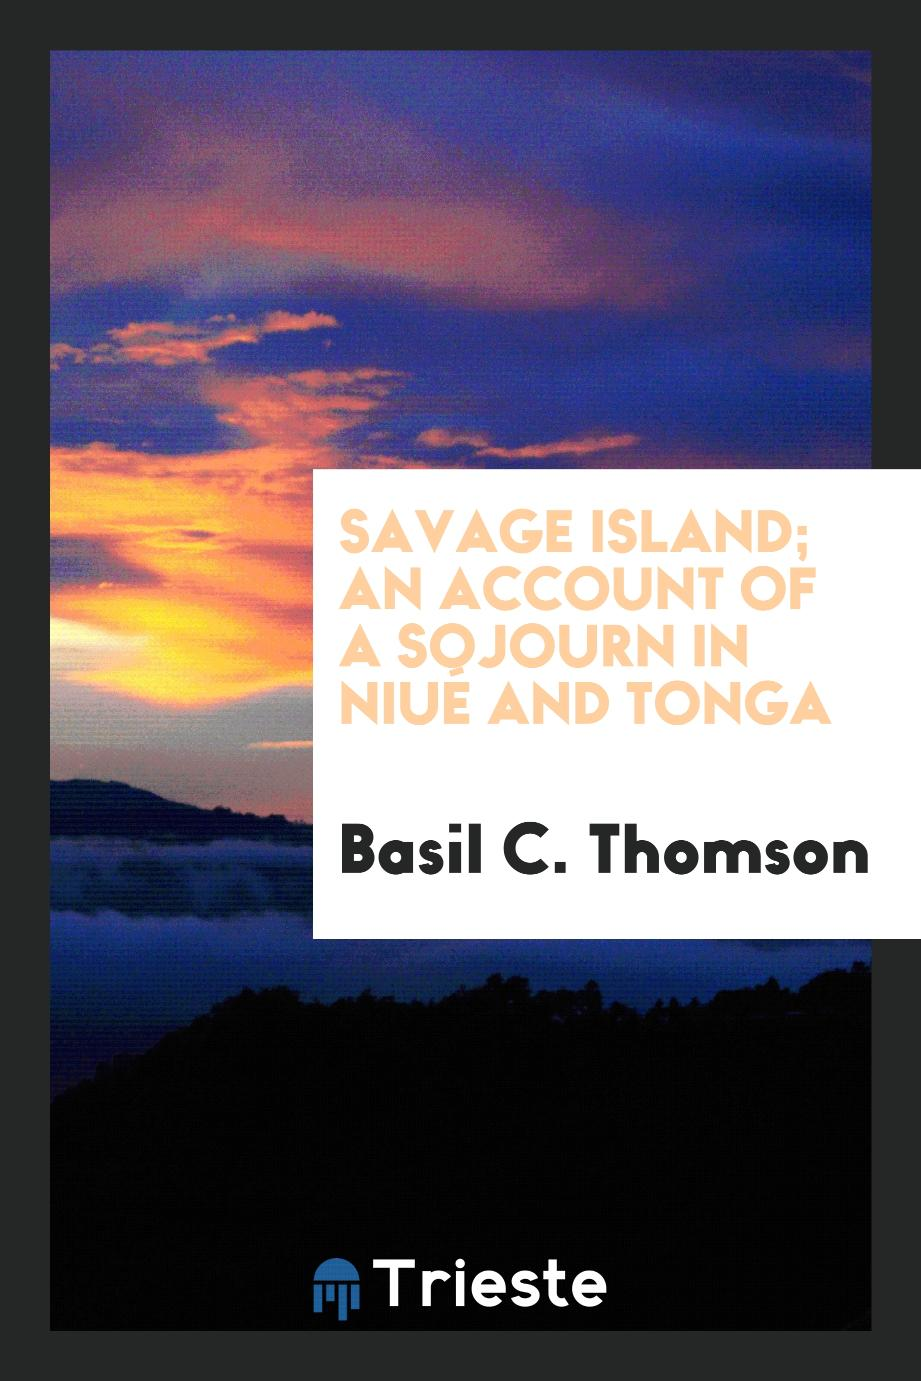 Basil C. Thomson - Savage Island; an account of a sojourn in Niué and Tonga